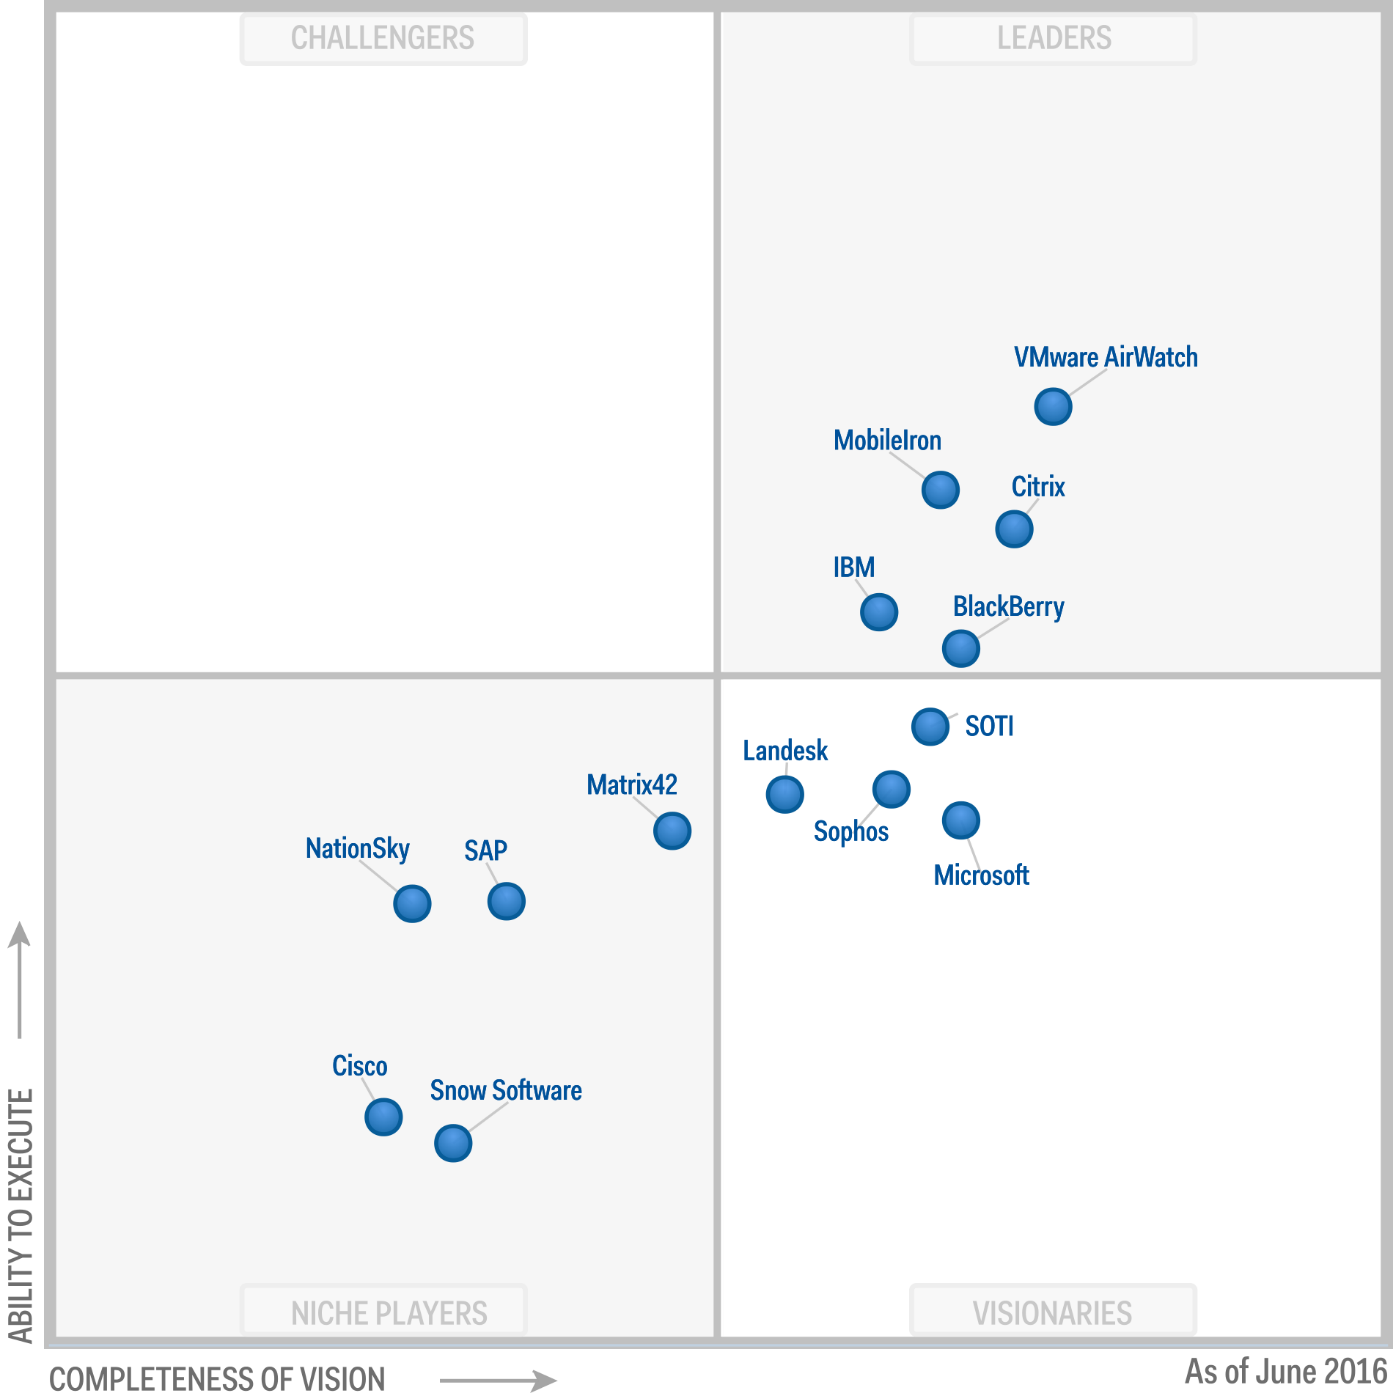 Magic Quadrant for Enterprise Mobility Management Suites 2016 (G00279887)